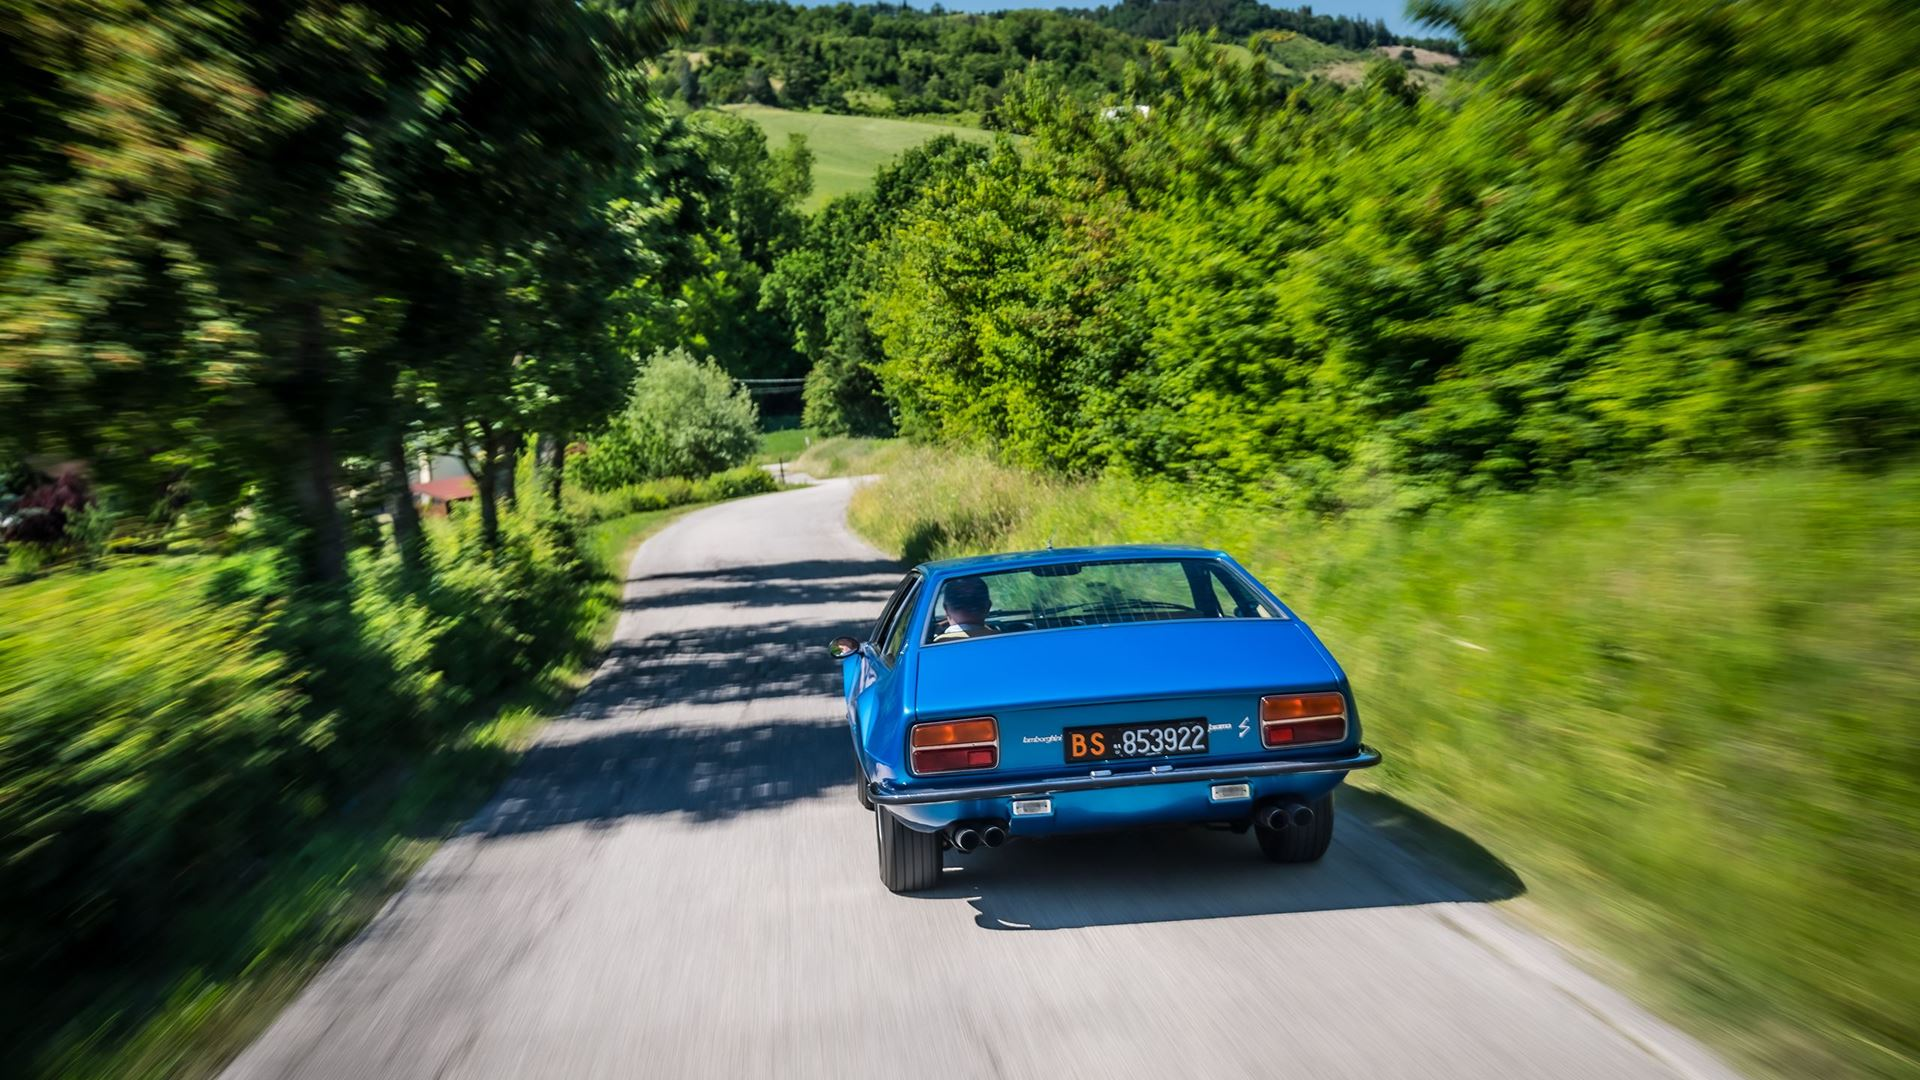 Lamborghini celebrates the 50th Anniversary of the Jarama GT - Image 5